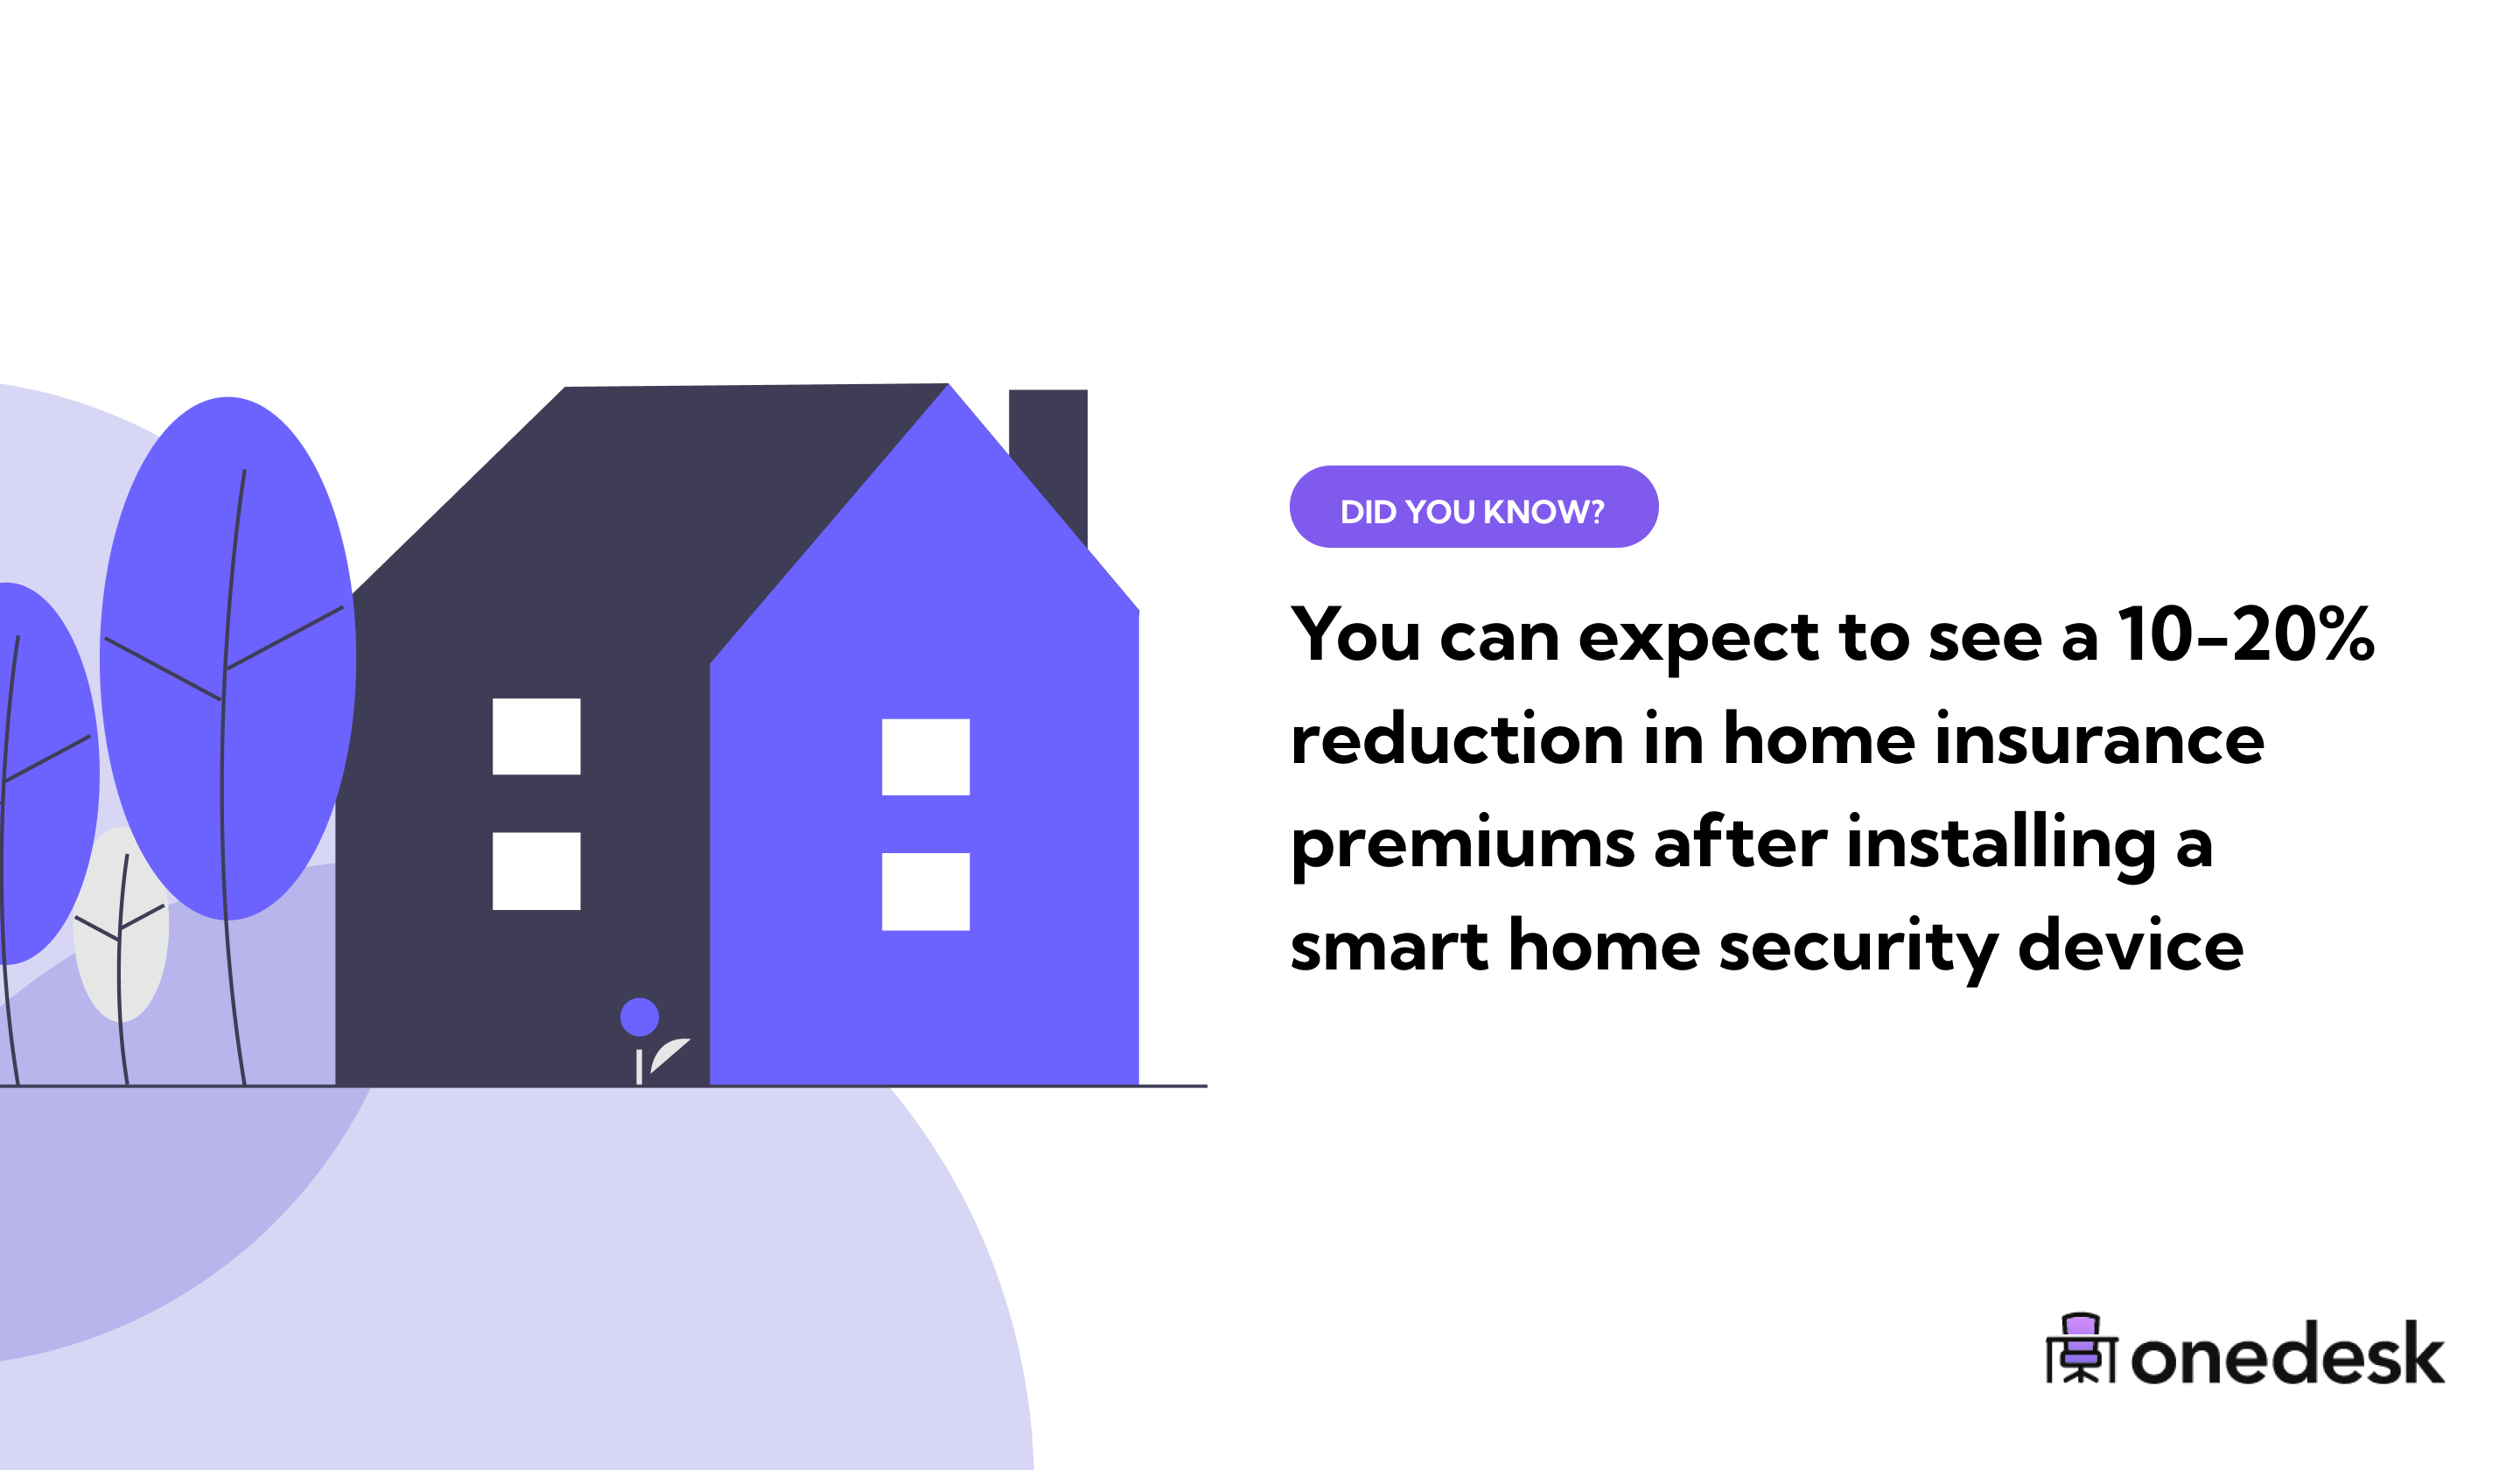 home insurance premiums reduction with smart homes